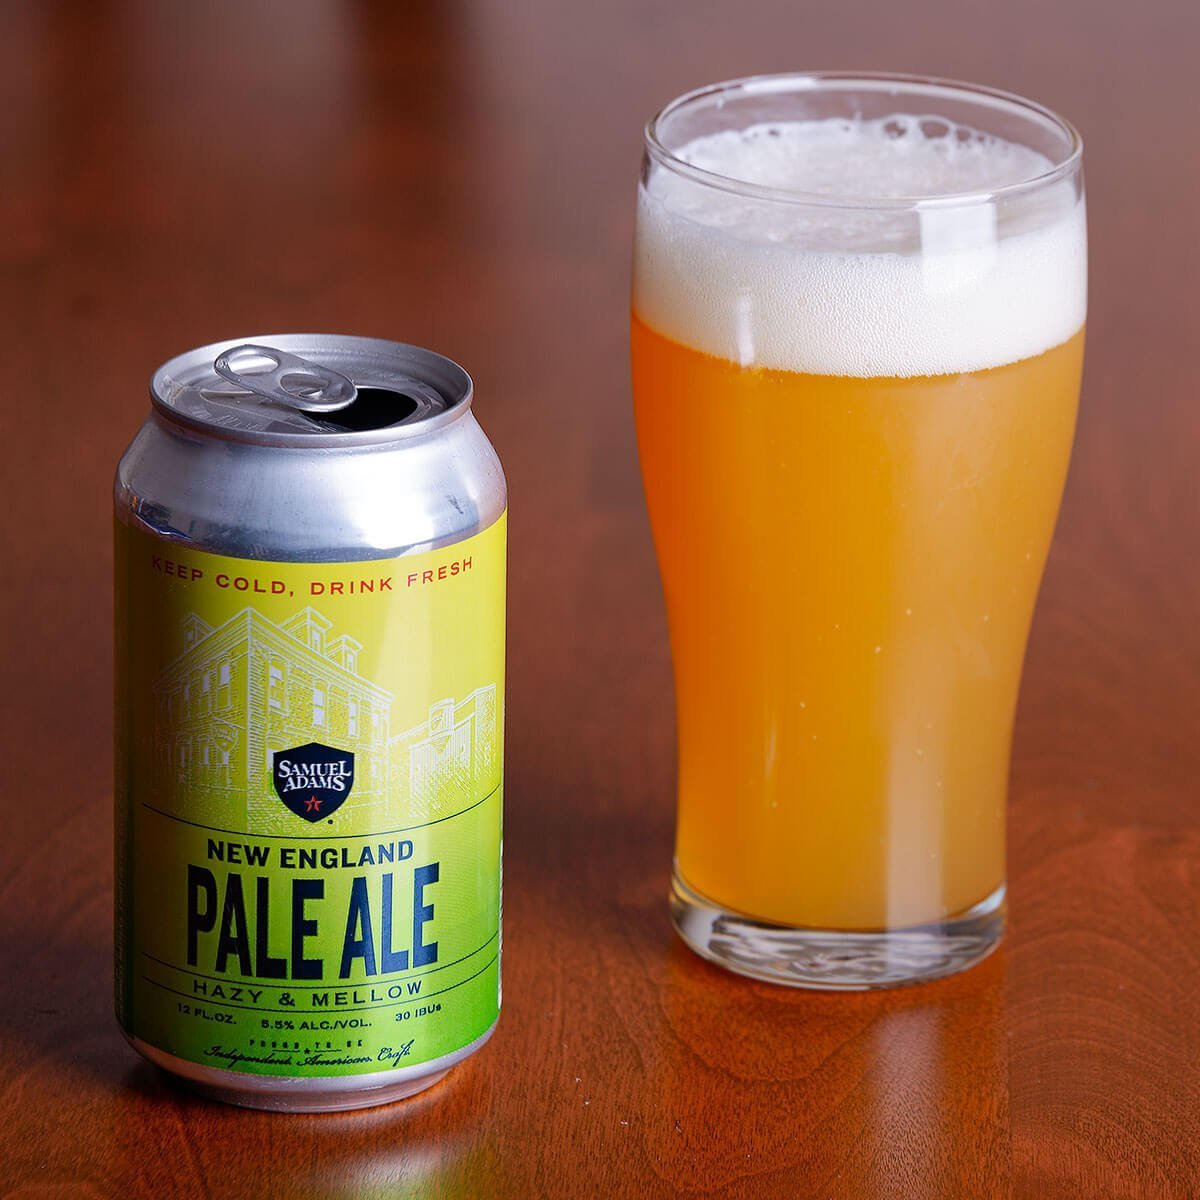 The Samuel Adams New England Pale Ale is an American Pale Ale brewed in the New England style from the Boston Beer Company.